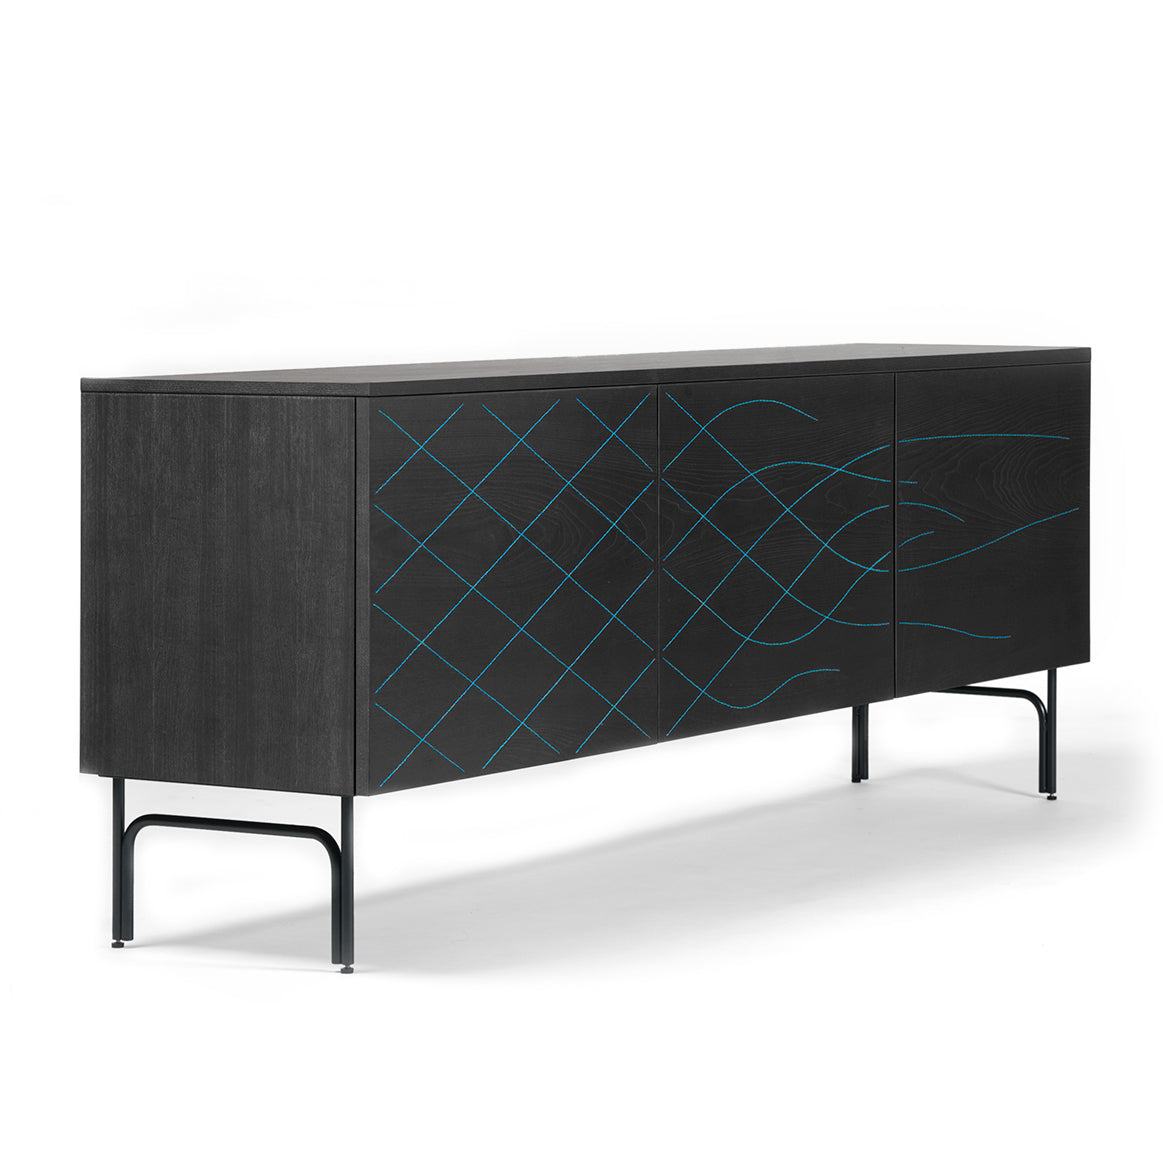 Couture Cabinet - BD Barcelona Design - Do Shop